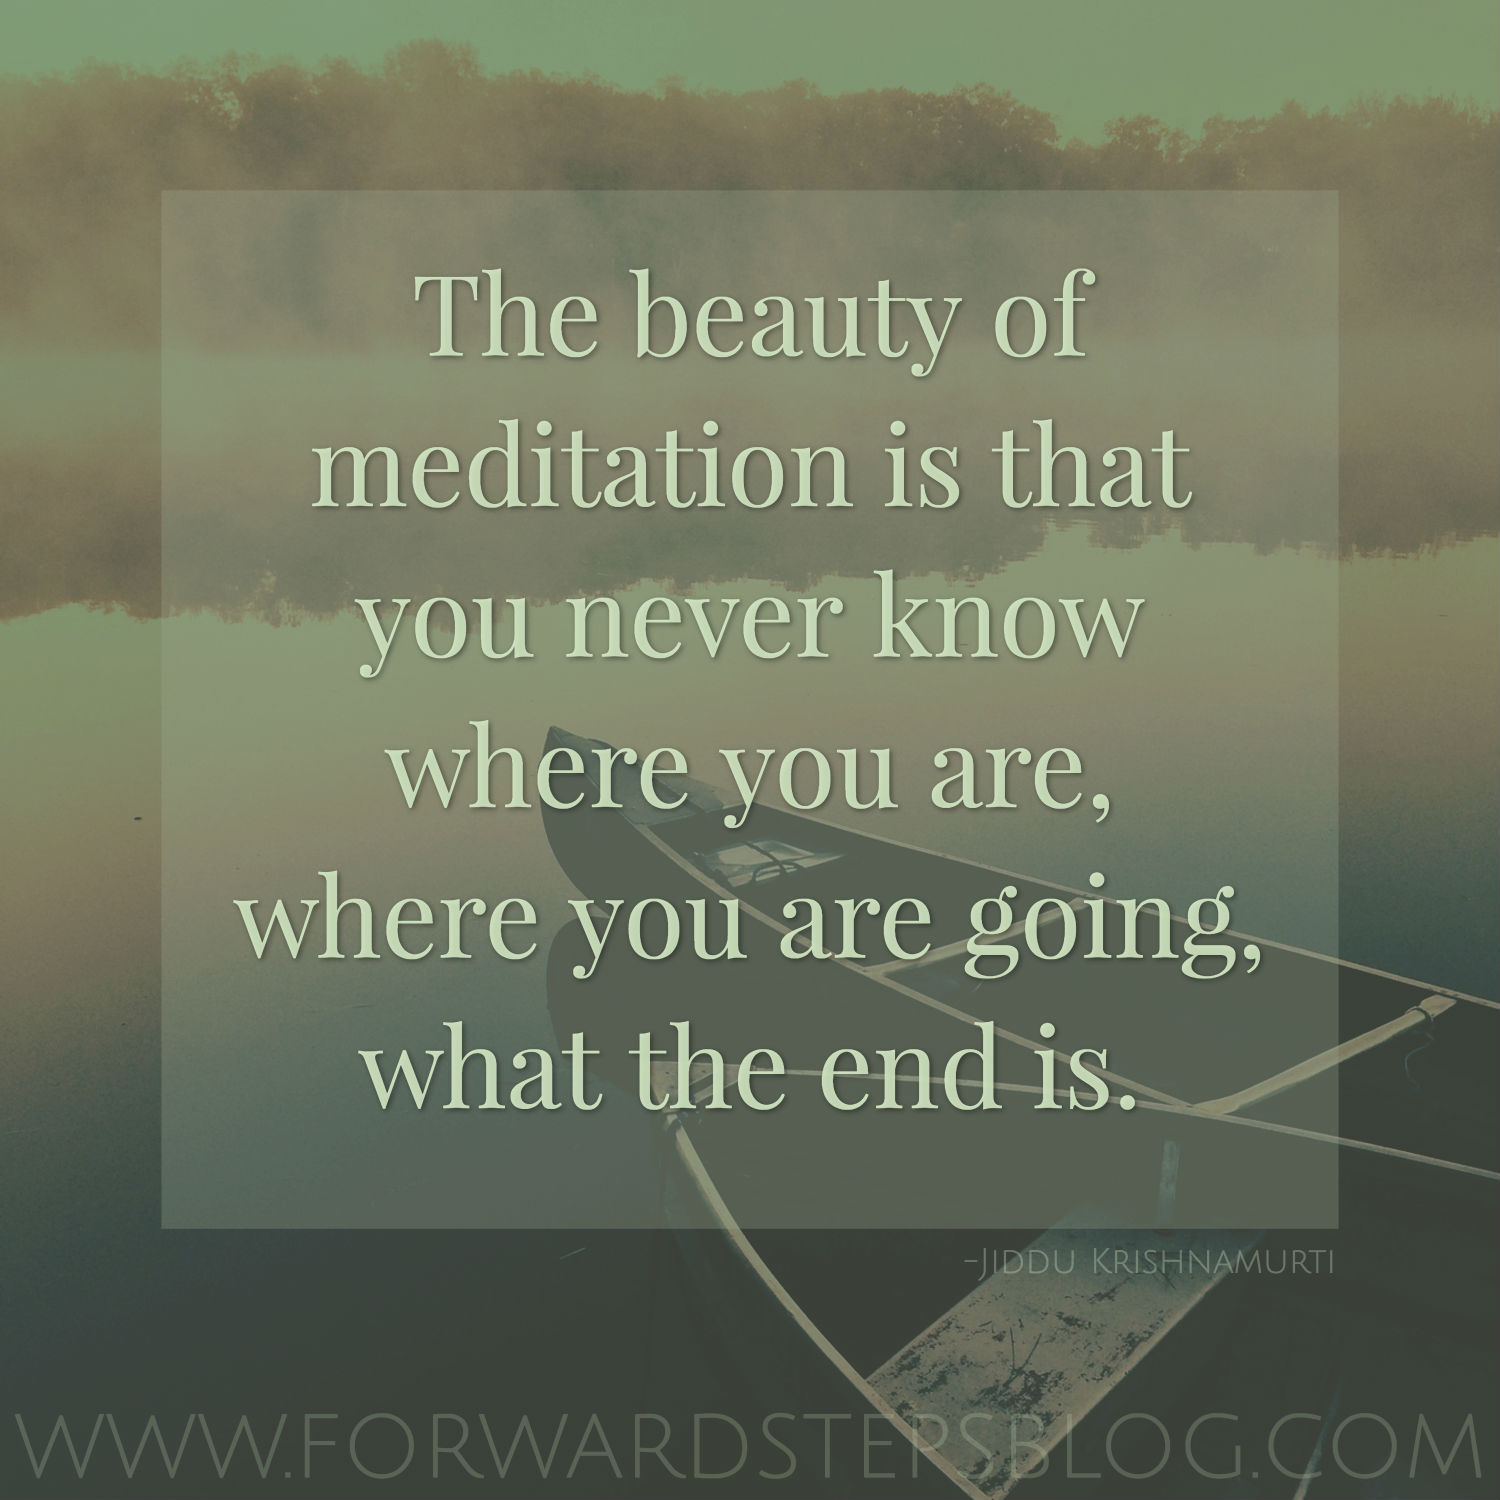 Meditation And Achievement article image 3